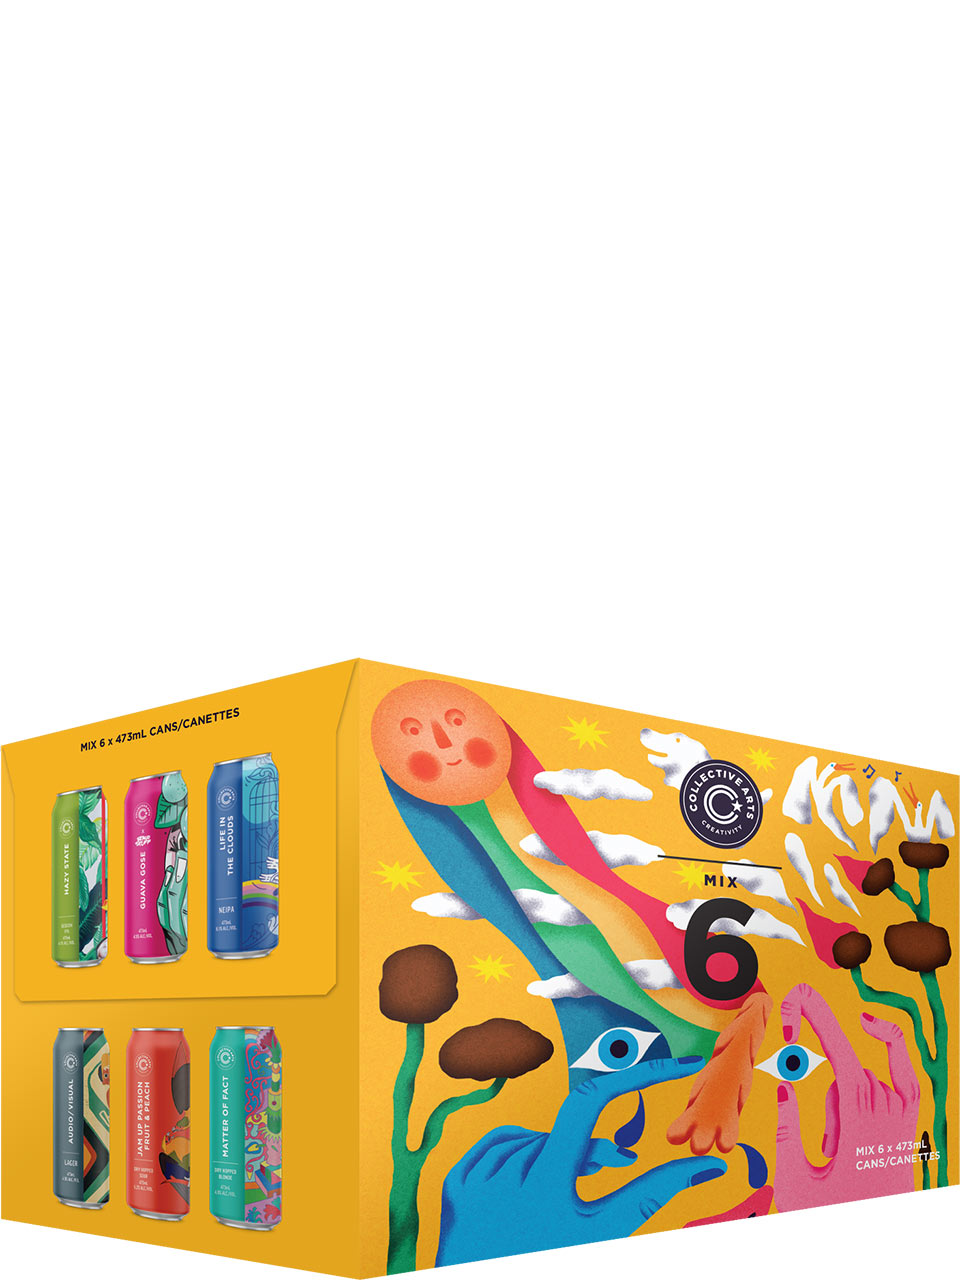 Collective Arts Summer Mix 6 Pack Cans